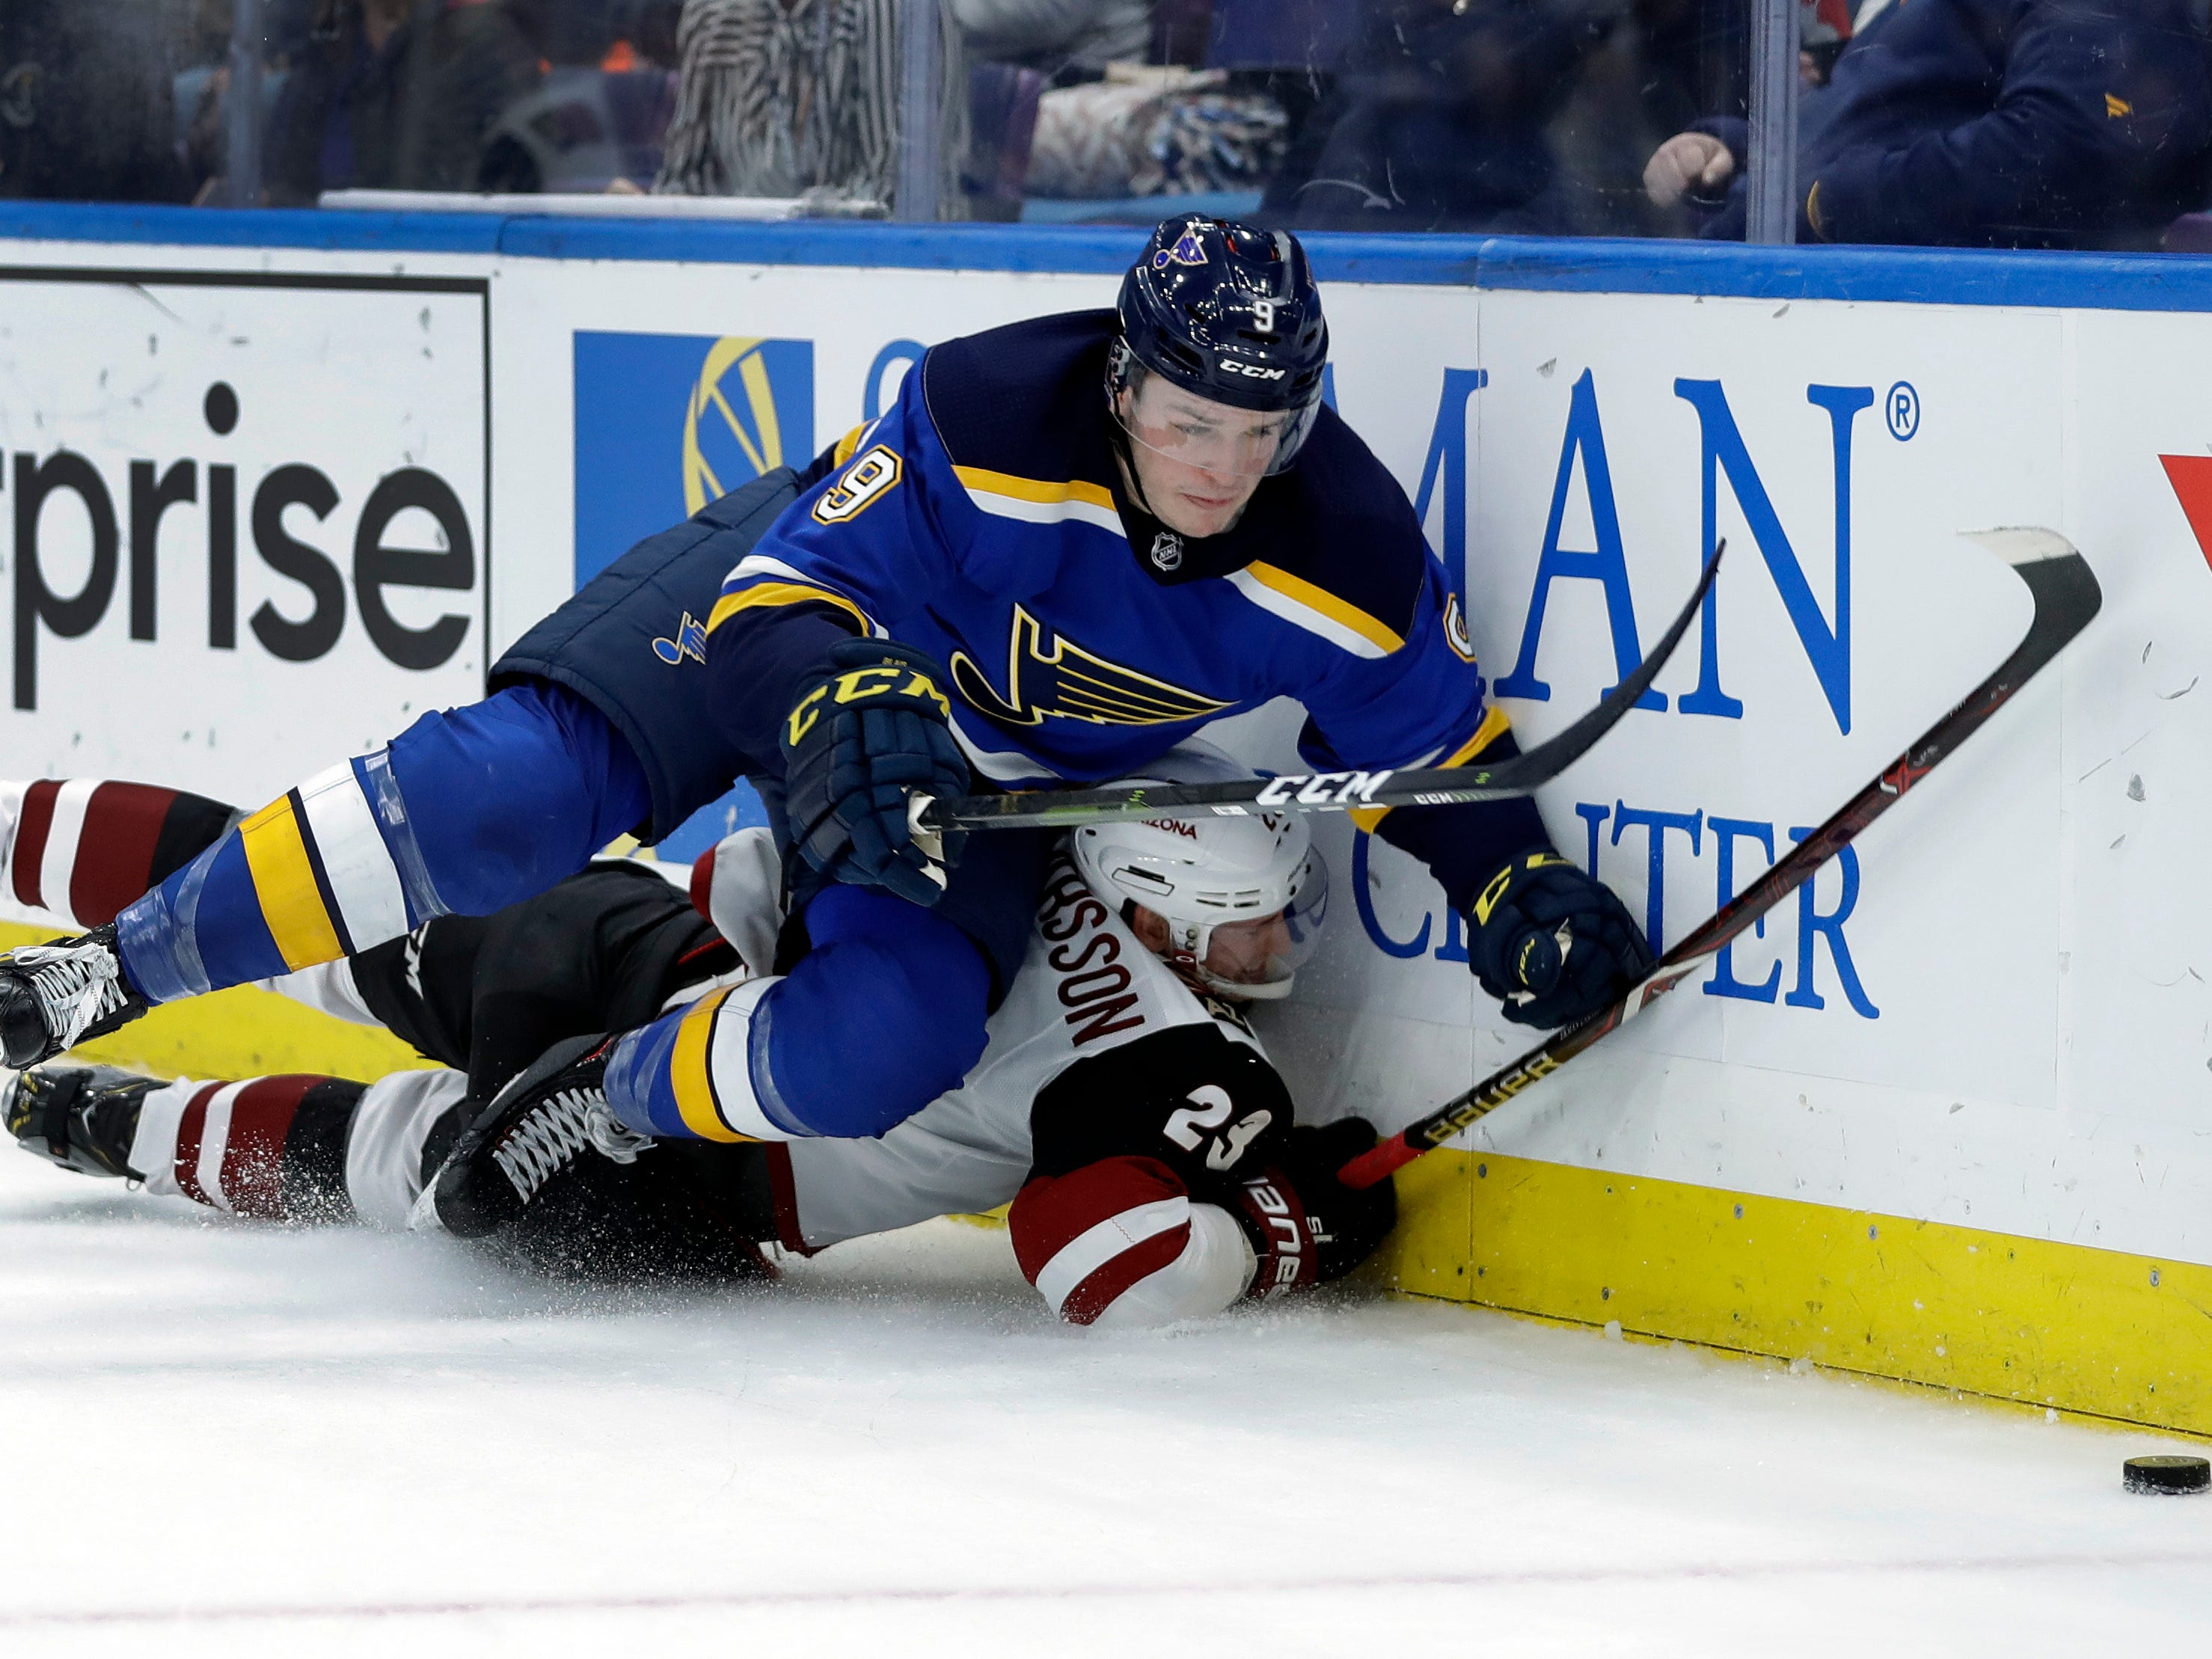 St. Louis Blues' Sammy Blais, top, and Arizona Coyotes' Oliver Ekman-Larsson, of Sweden, slam into the boards as they chase a loose puck during the second period of an NHL hockey game, Tuesday, March 12, 2019, in St. Louis.